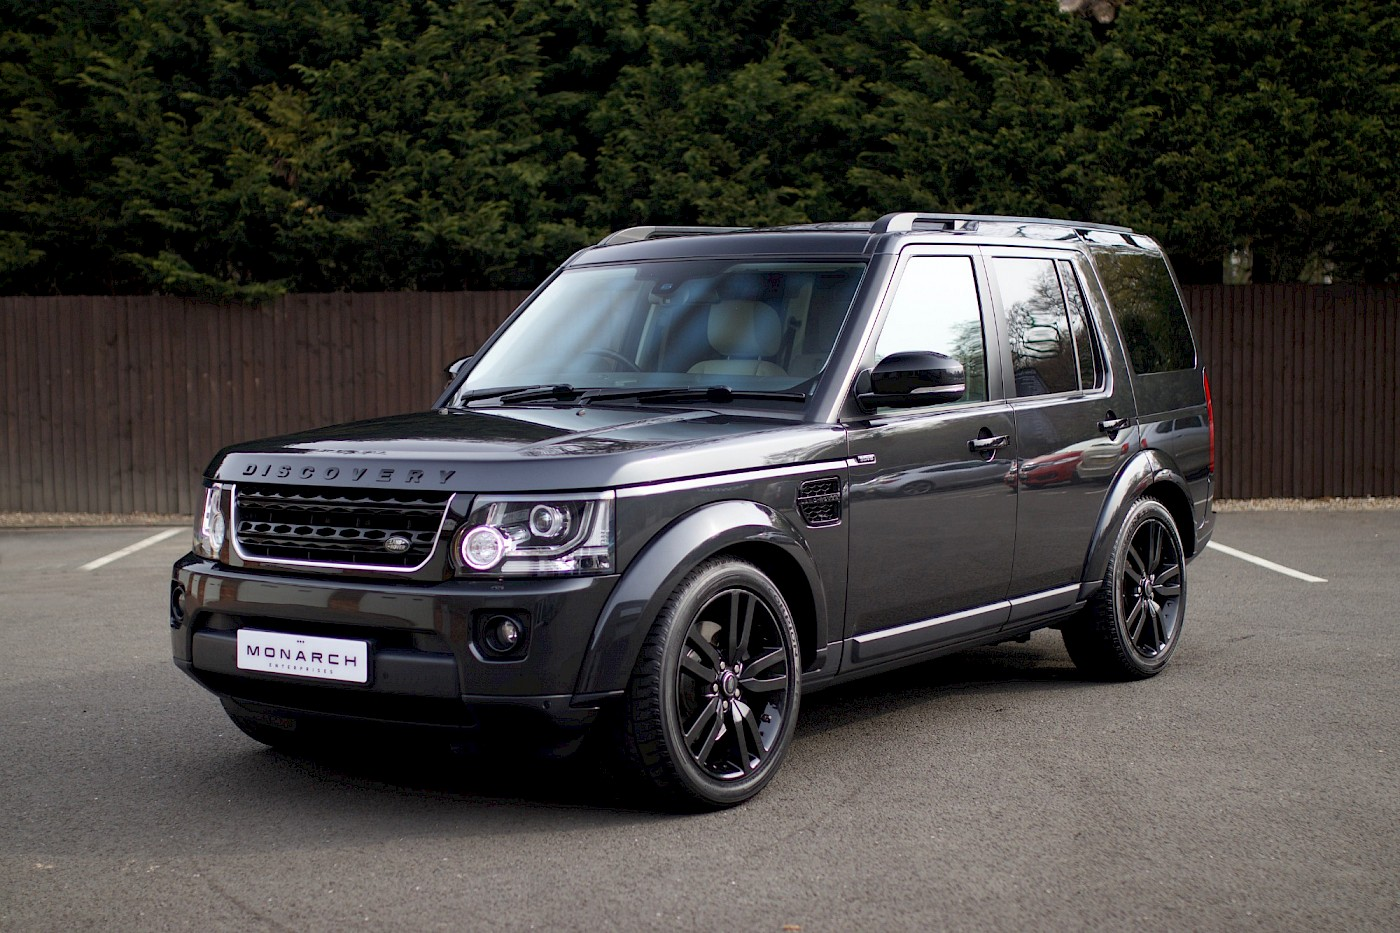 2015/15 Land Rover Discovery HSE Luxury SDV6 6